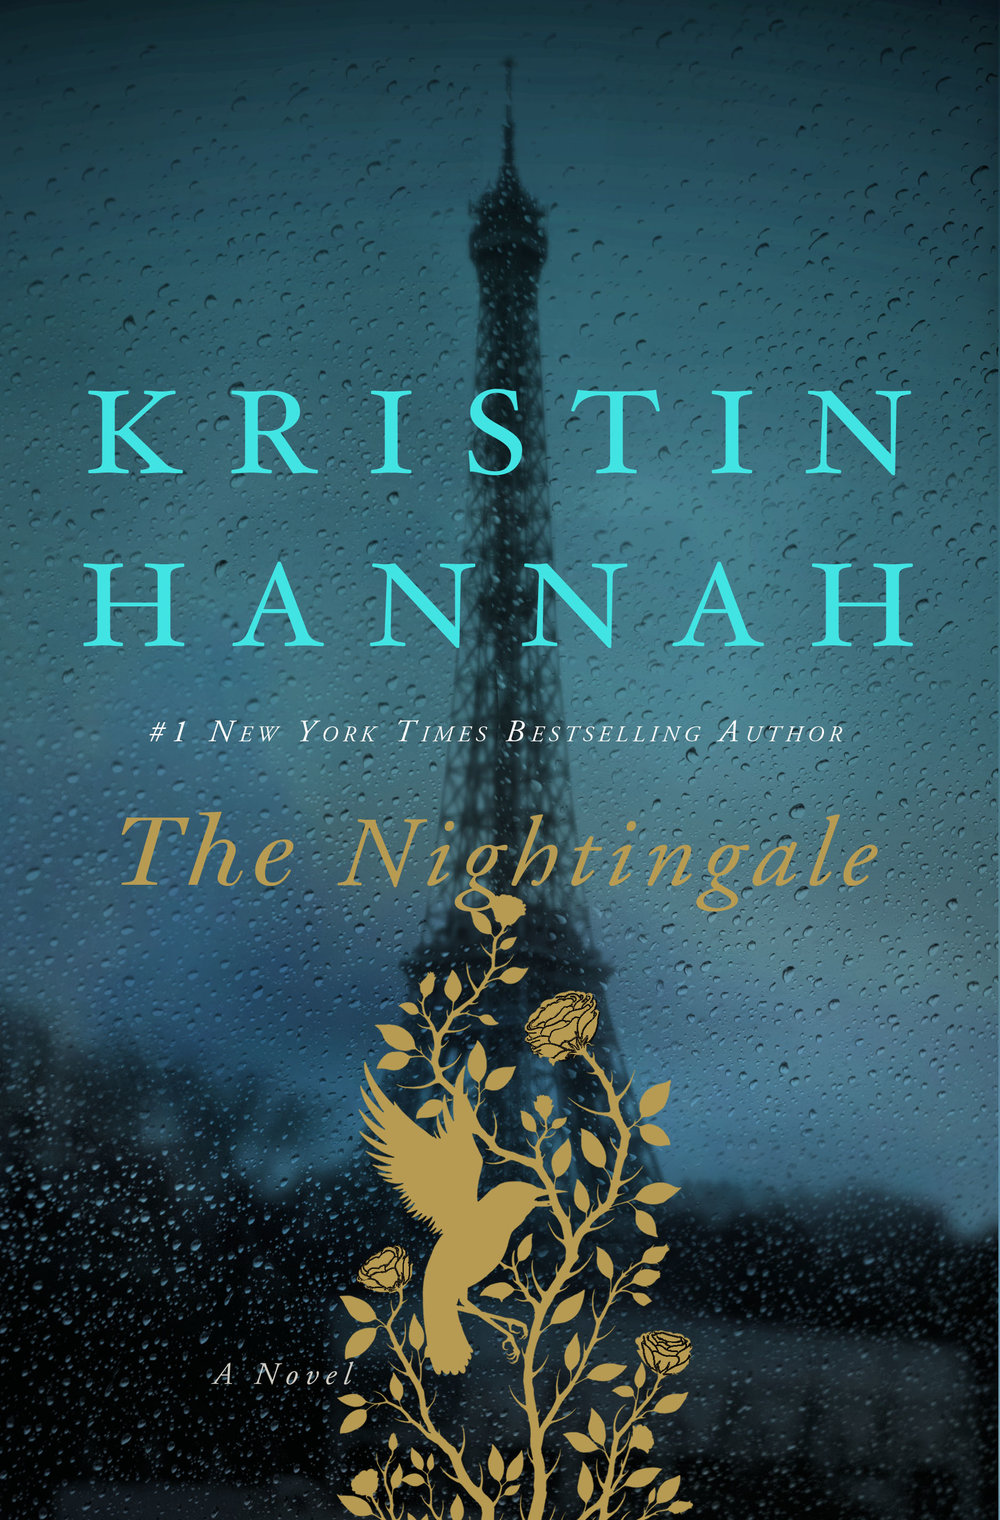 ALSO BY KRISTIN HANNAH:  The Great Alone, Firefly Lane, Winter Garden